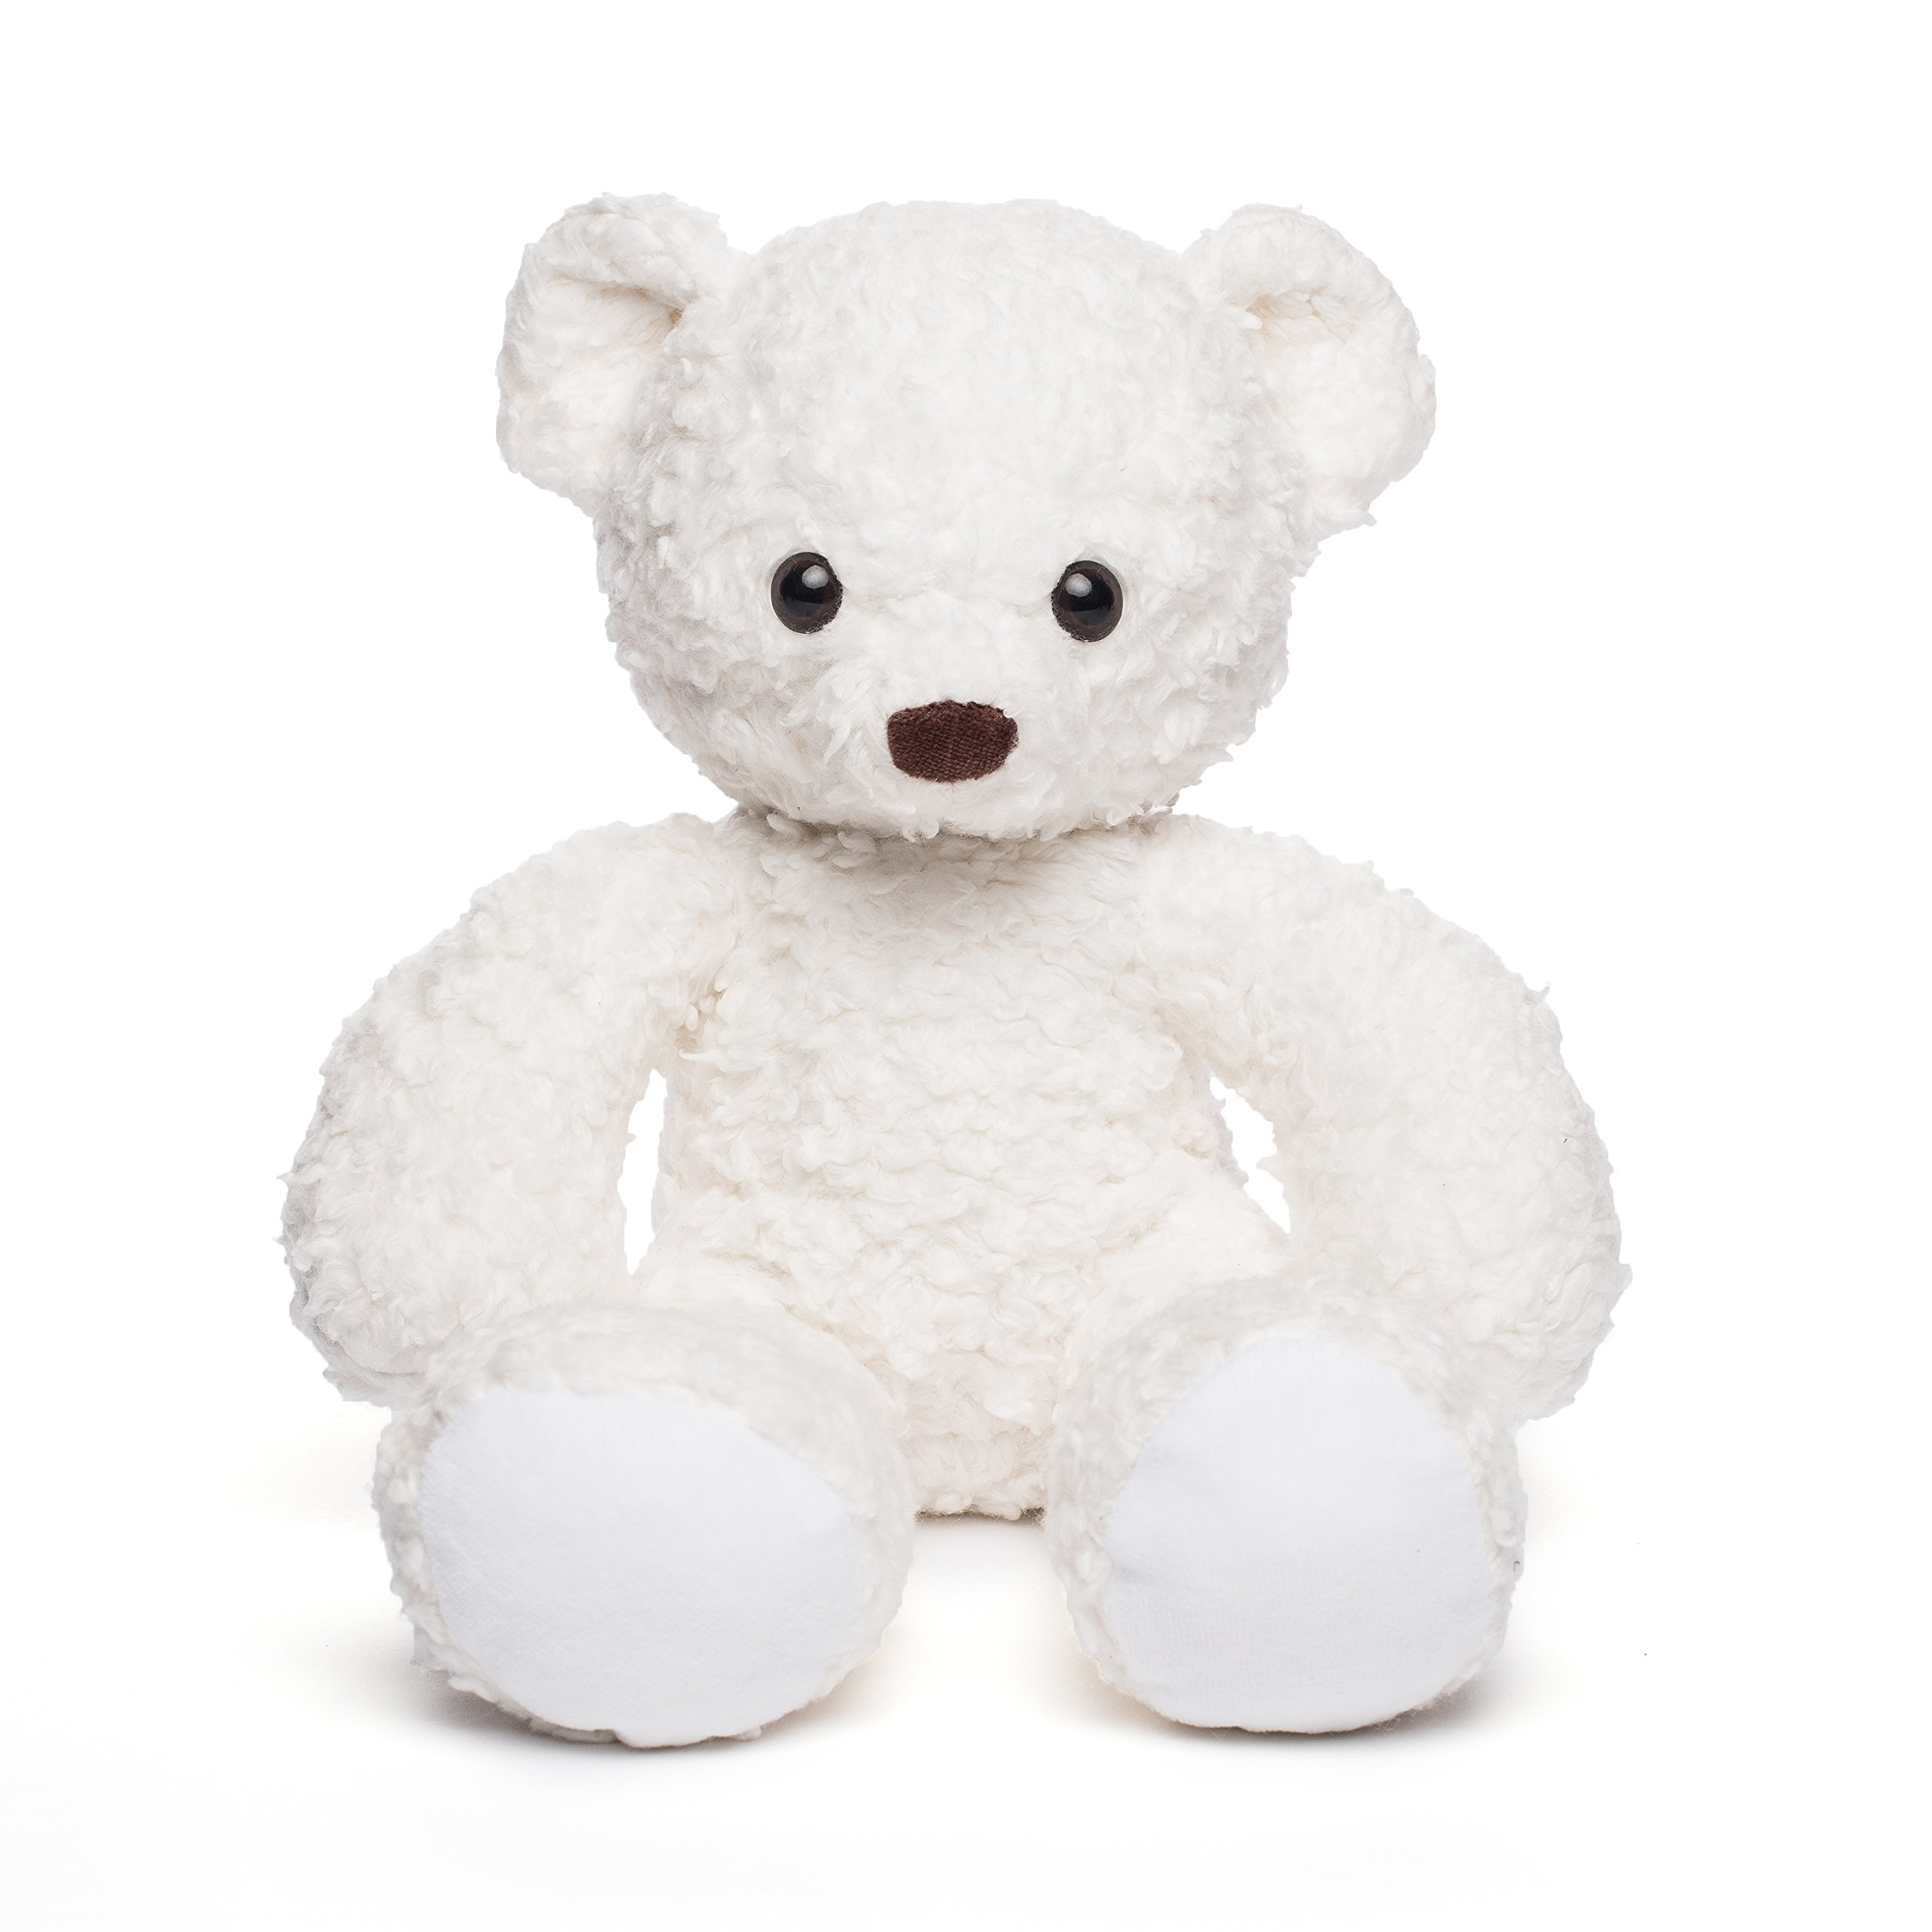 Sherpa Organic Teddy Bear Cream 16 Inches by Bears For Humanity